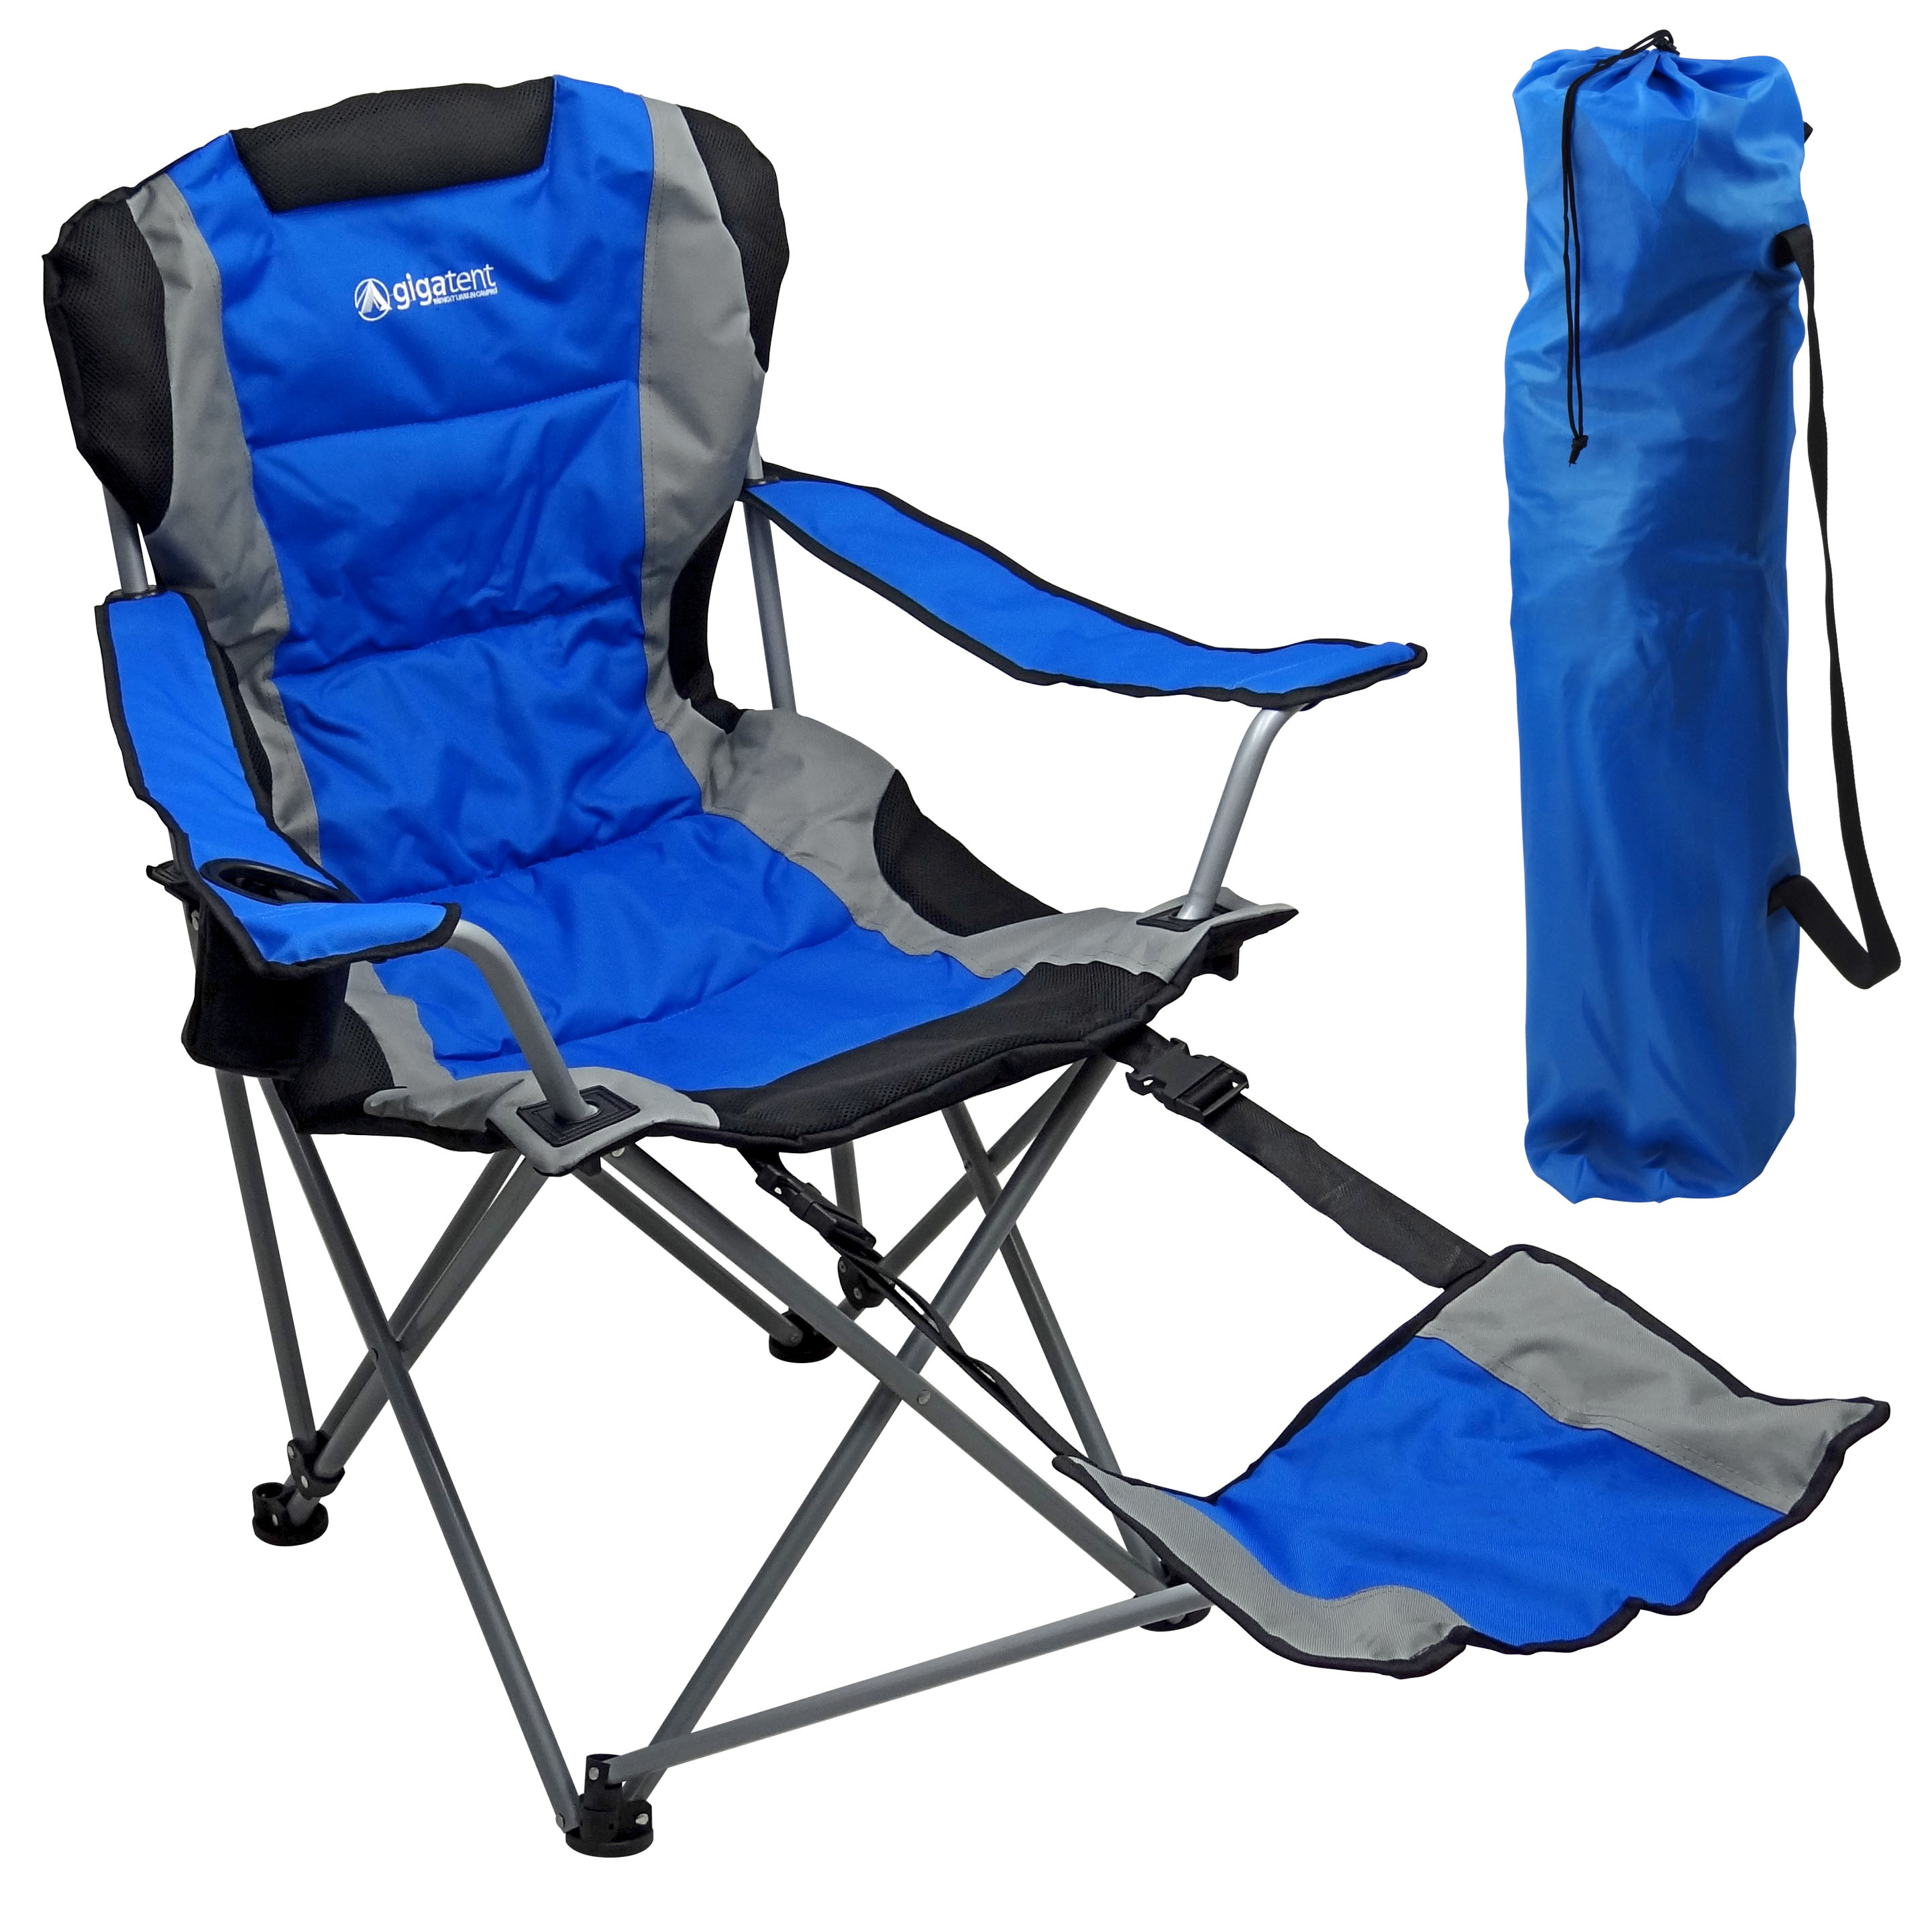 Camper Chairs Camping Chair With Footrest Blue Gigatent